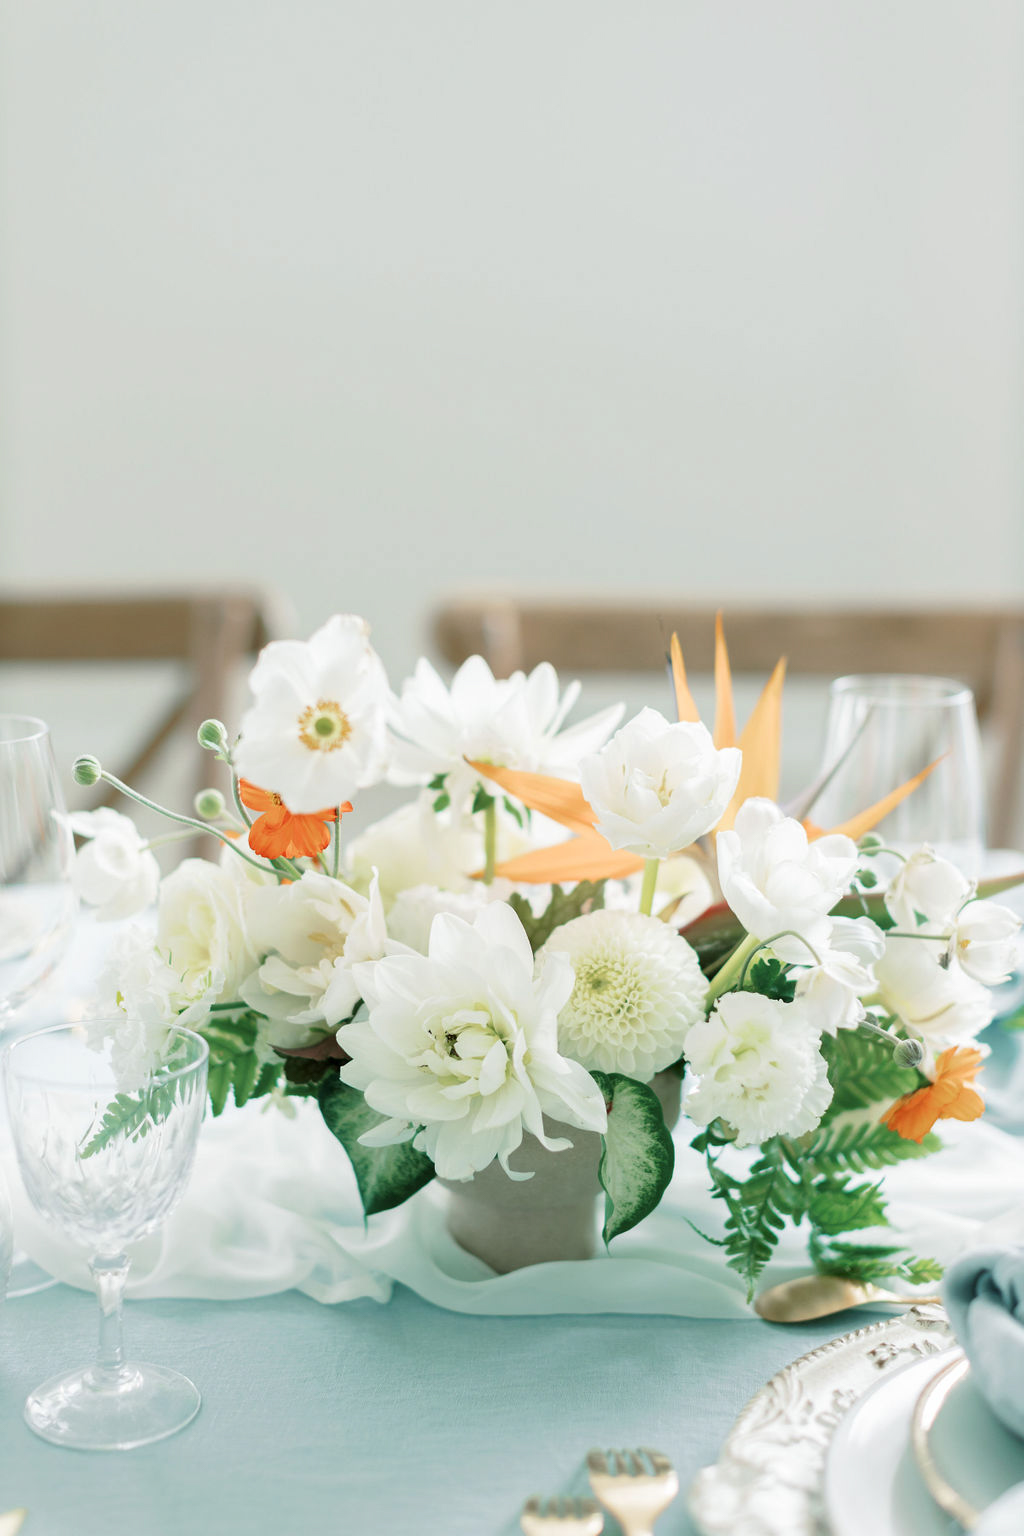 white and orange floral wedding centerpiece on blue table